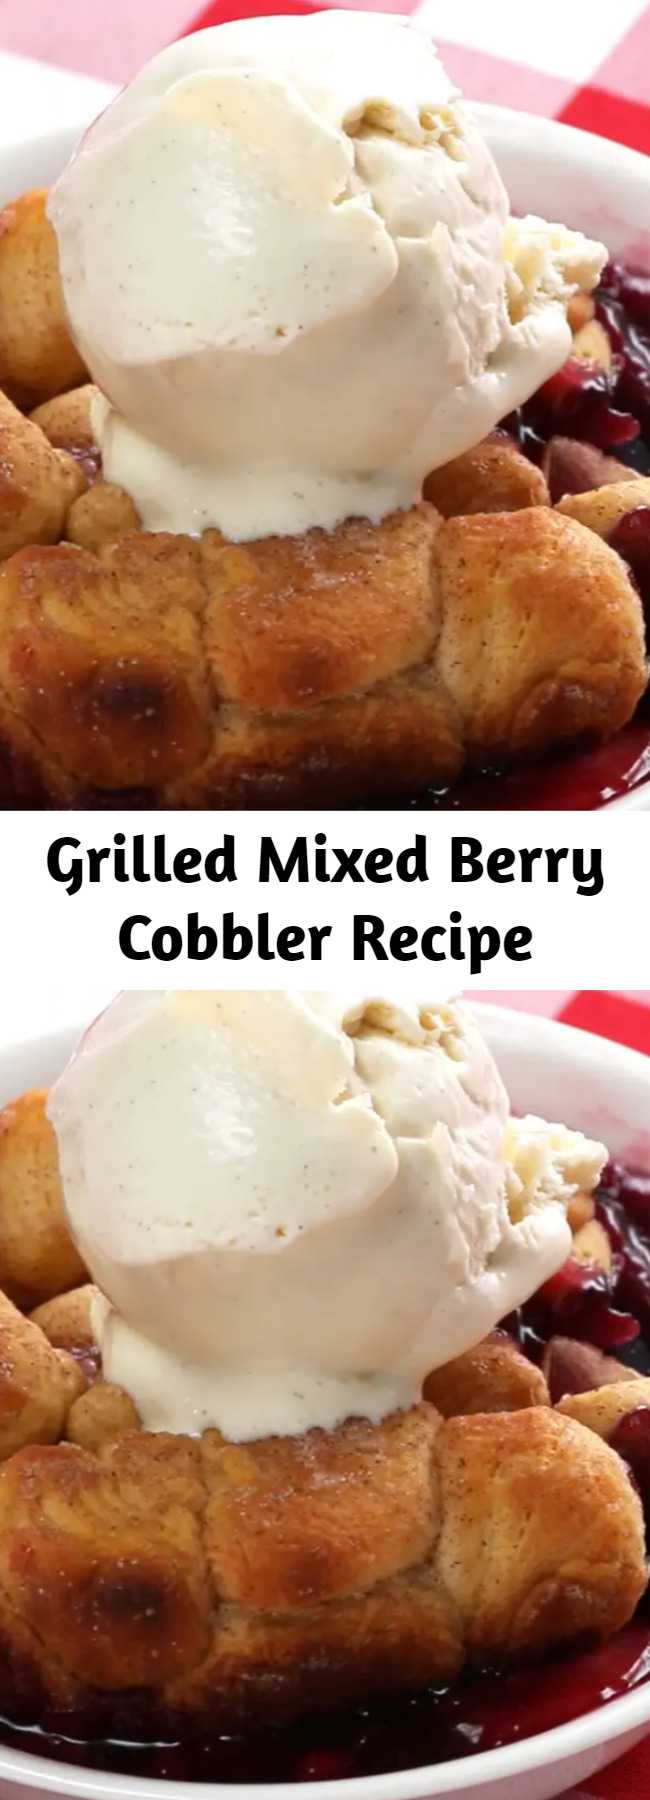 Grilled Mixed Berry Cobbler Recipe - Try Out Your Grill And Make This Incredible Mixed Berry Cobbler.